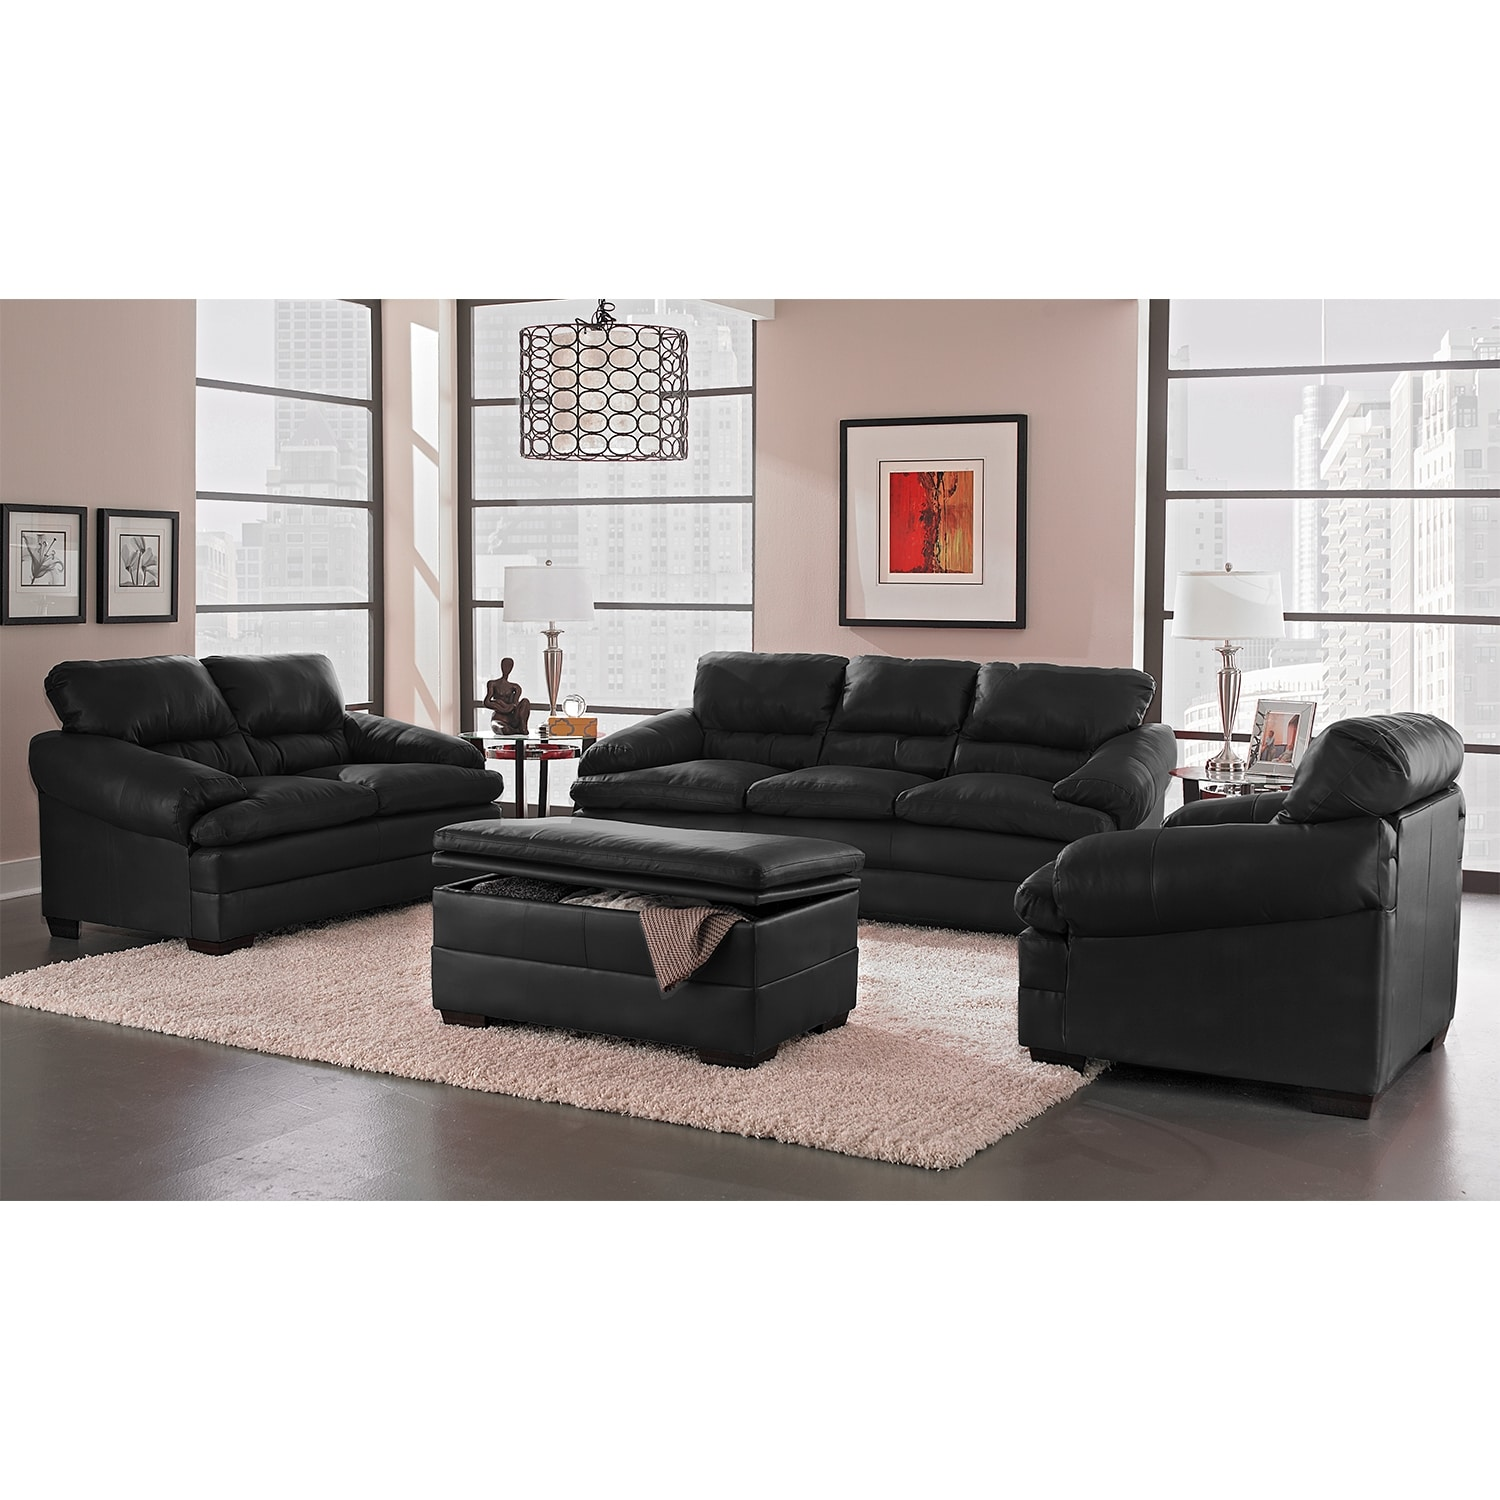 Living room furniture torino ii 2 pc living room wchair